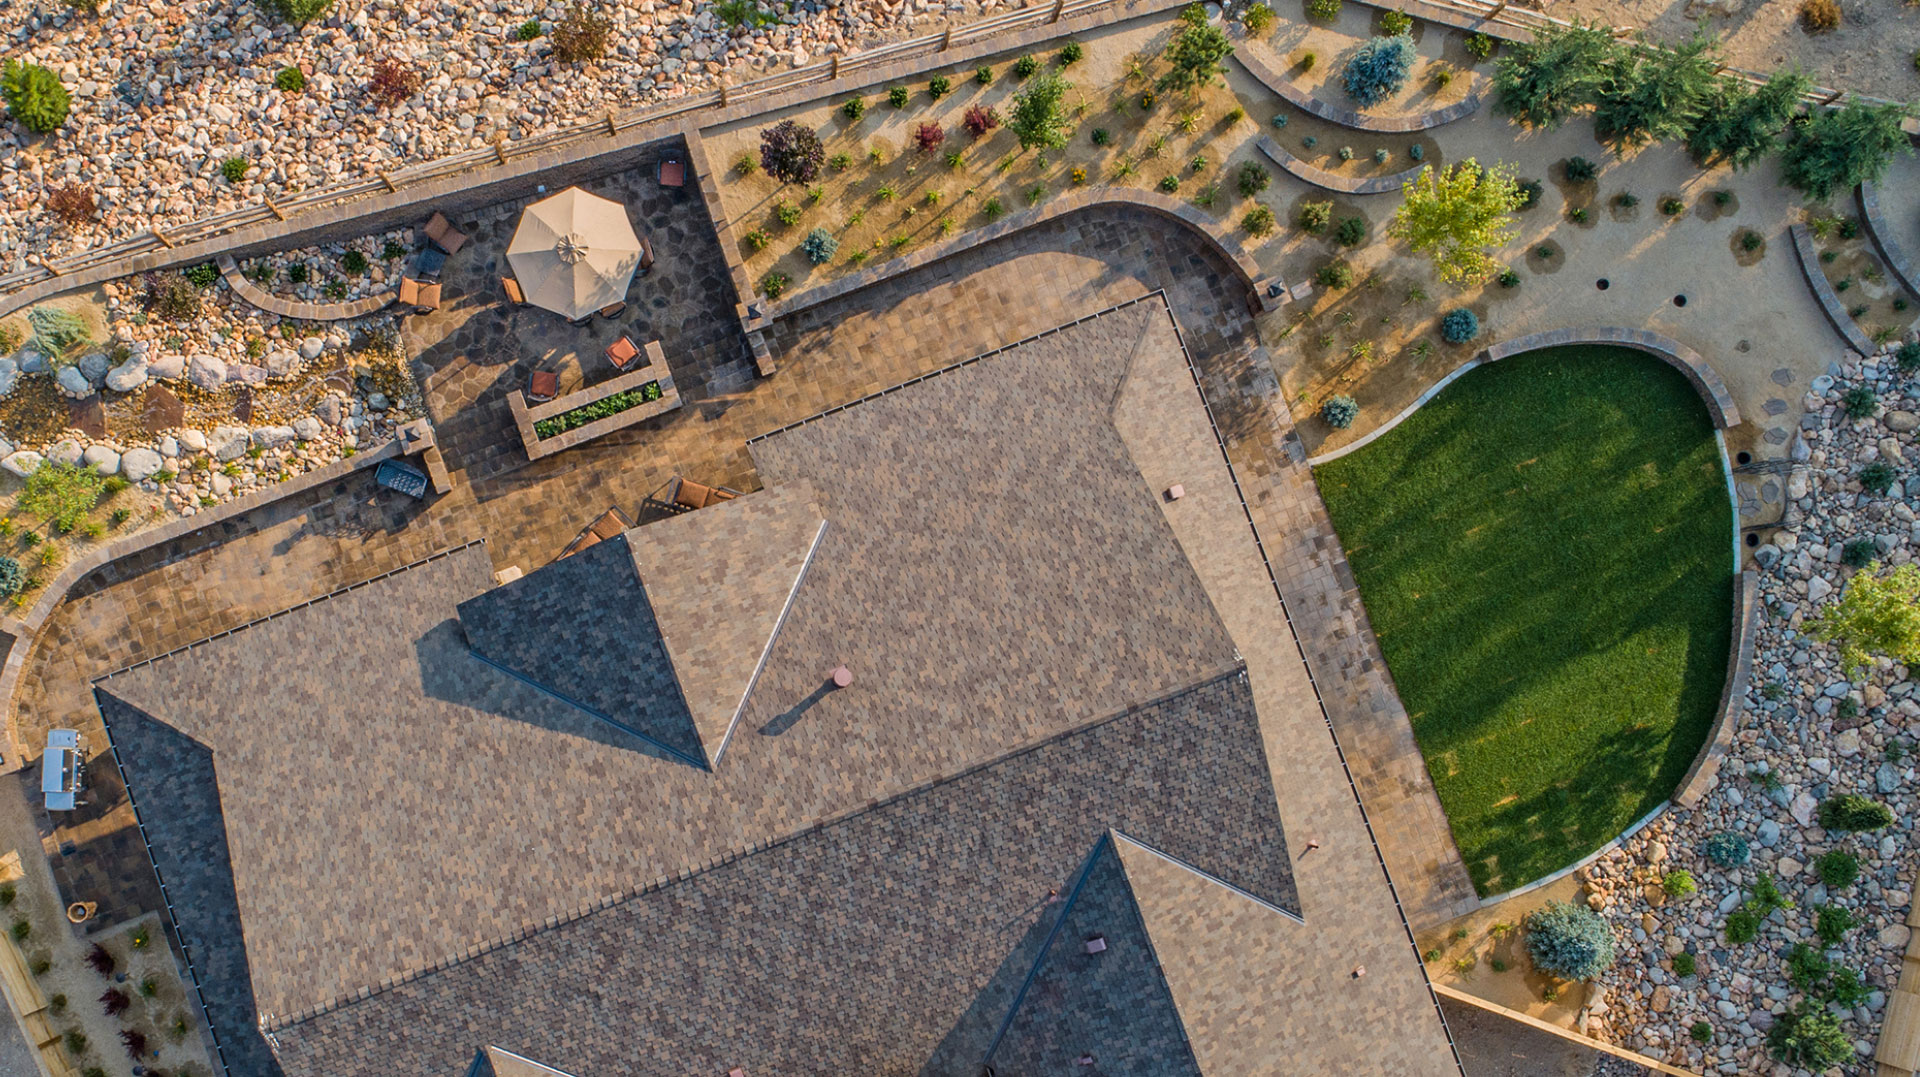 Reno Residential Landscaping Design and Installation